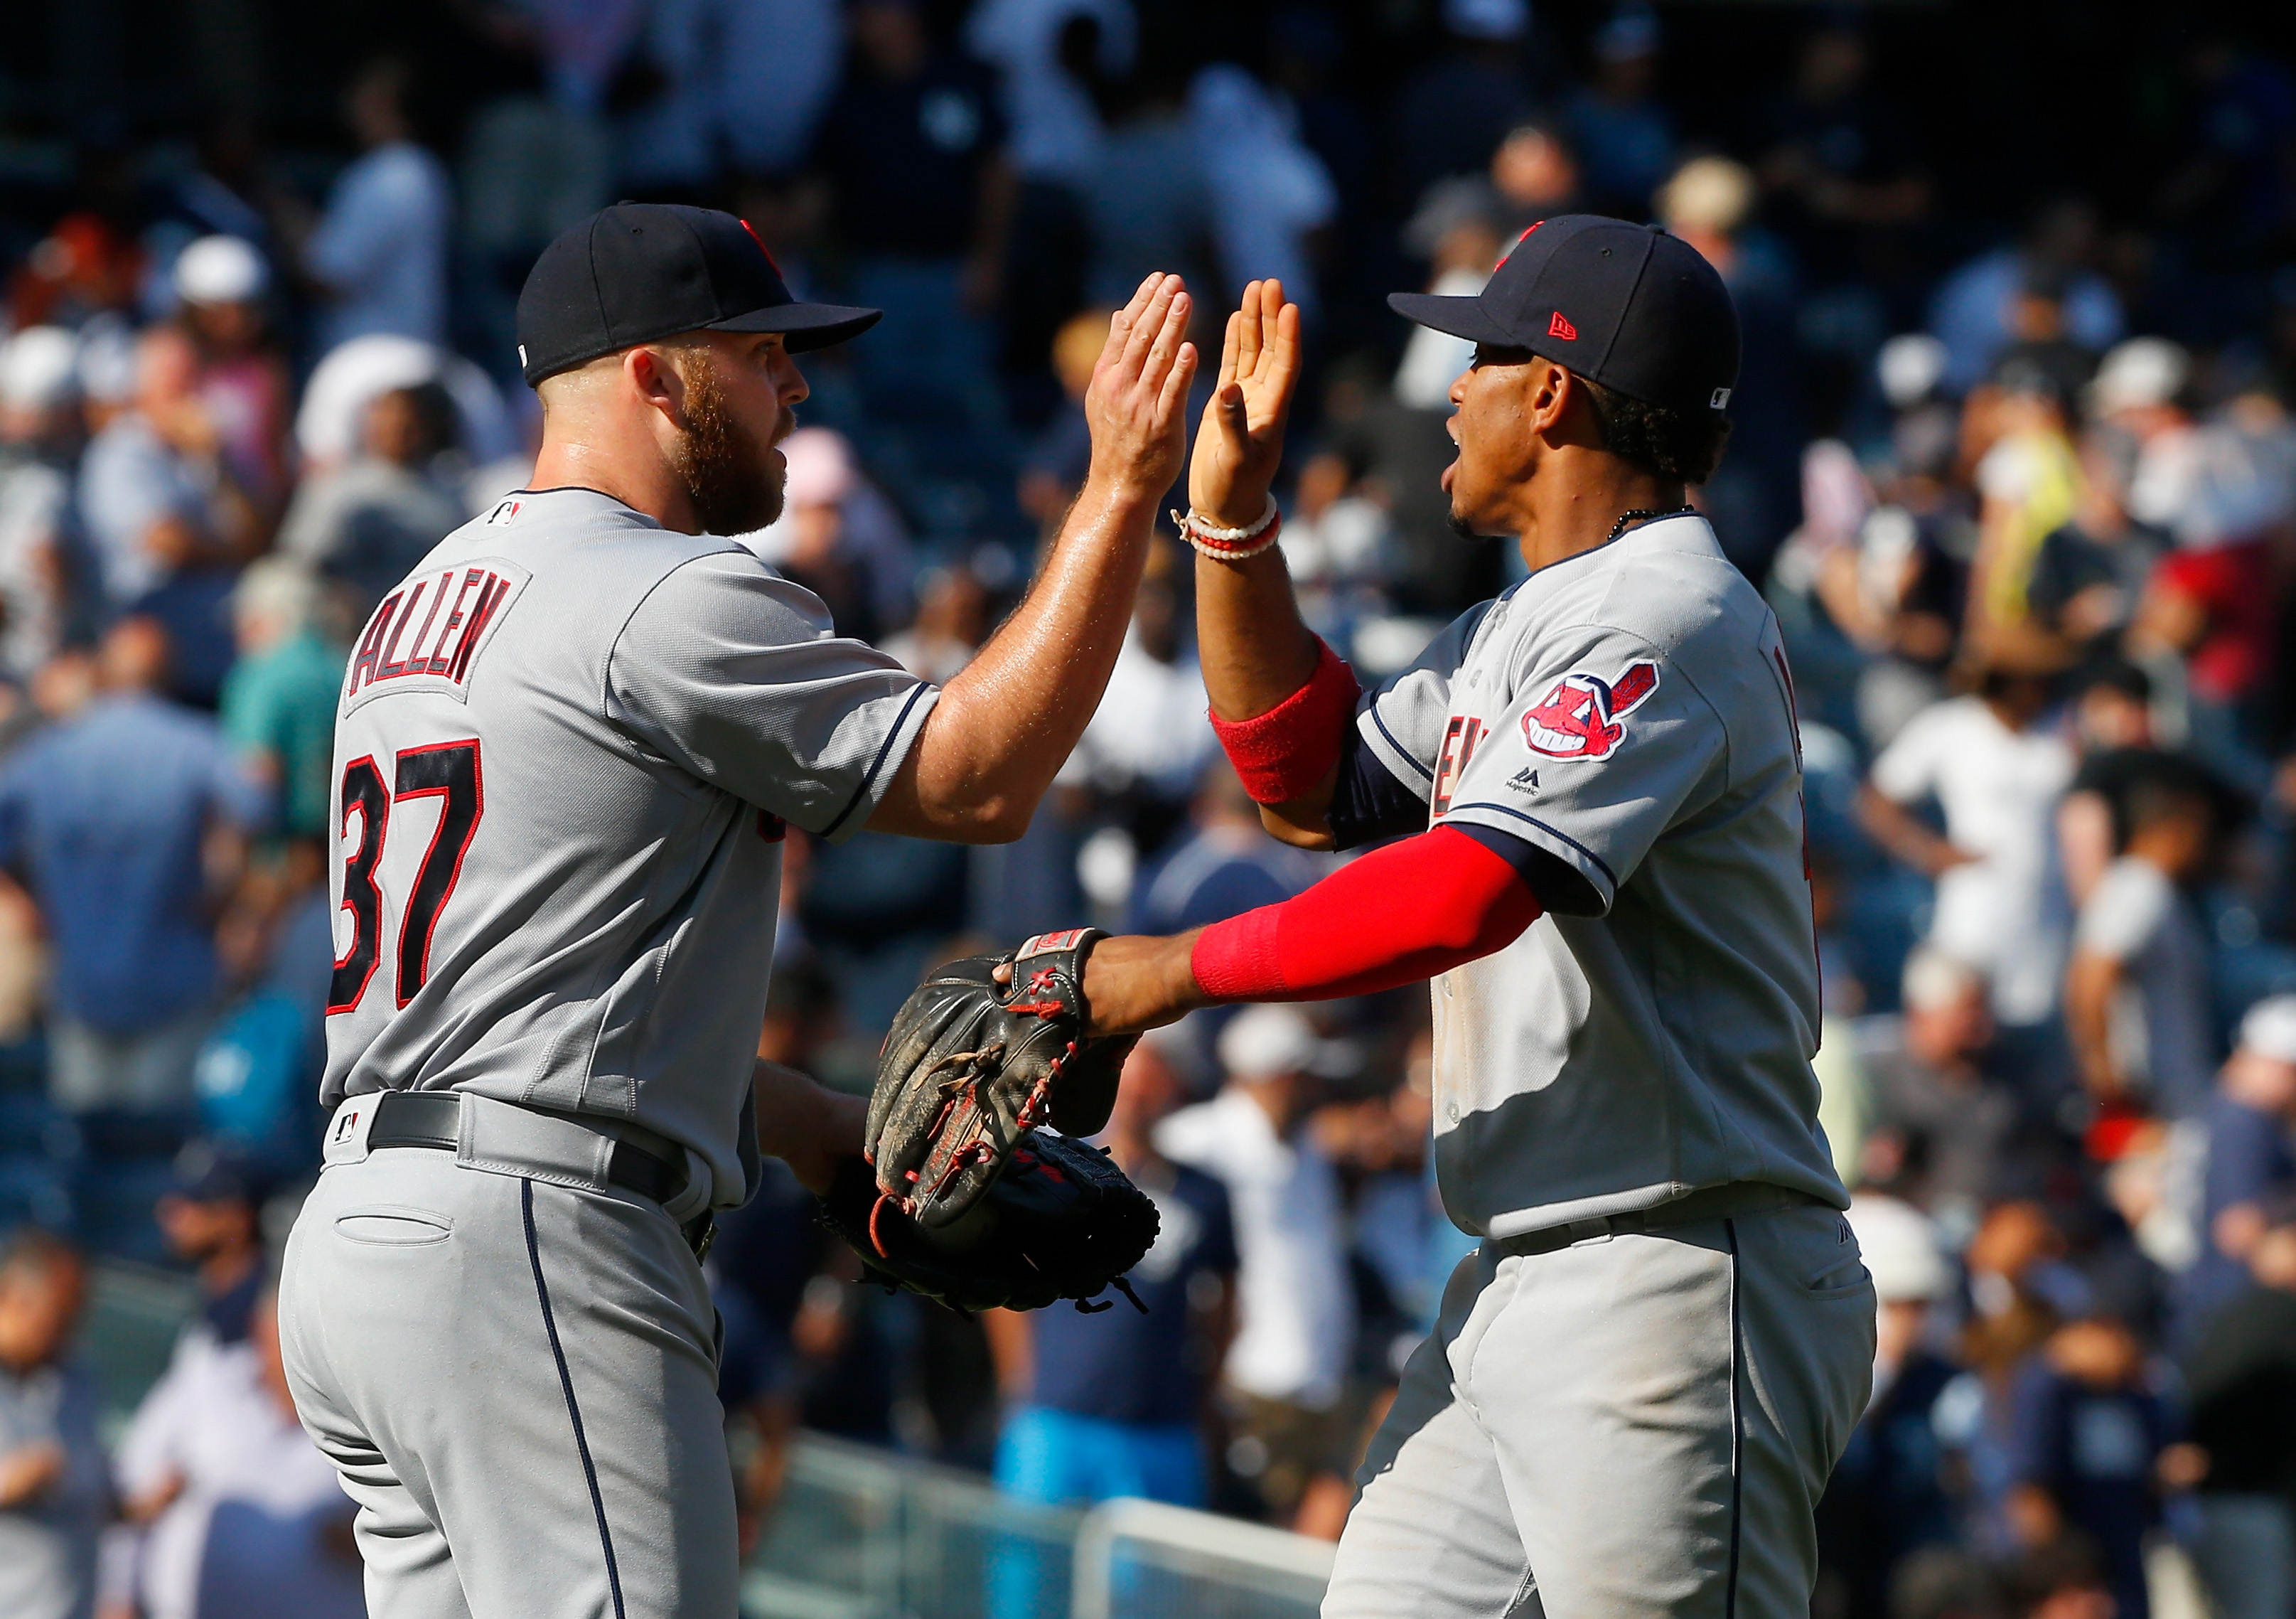 Jose Ramirez joins elite company in win over Tigers